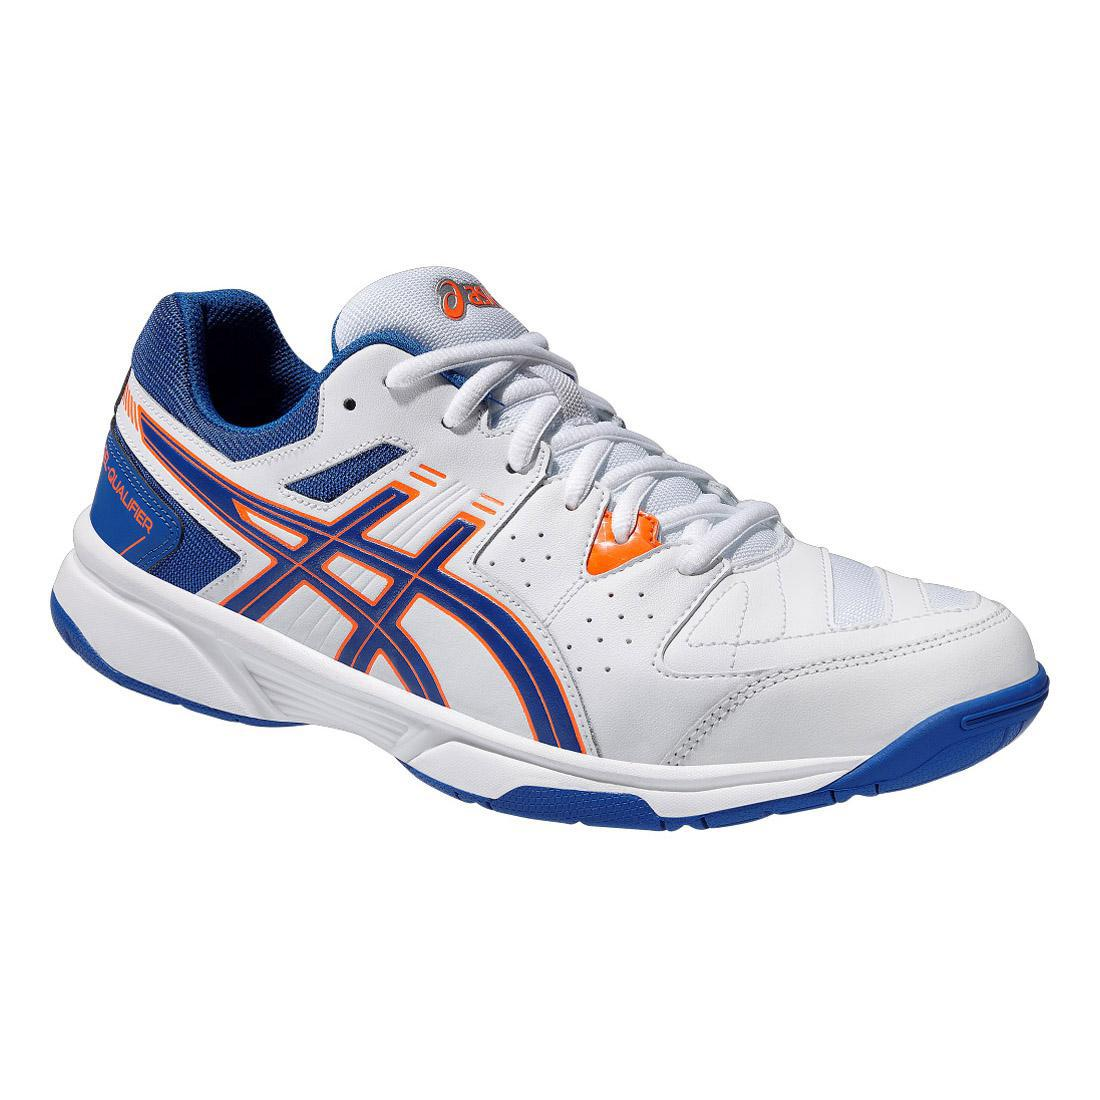 Images Of Mens Tennis Shoes